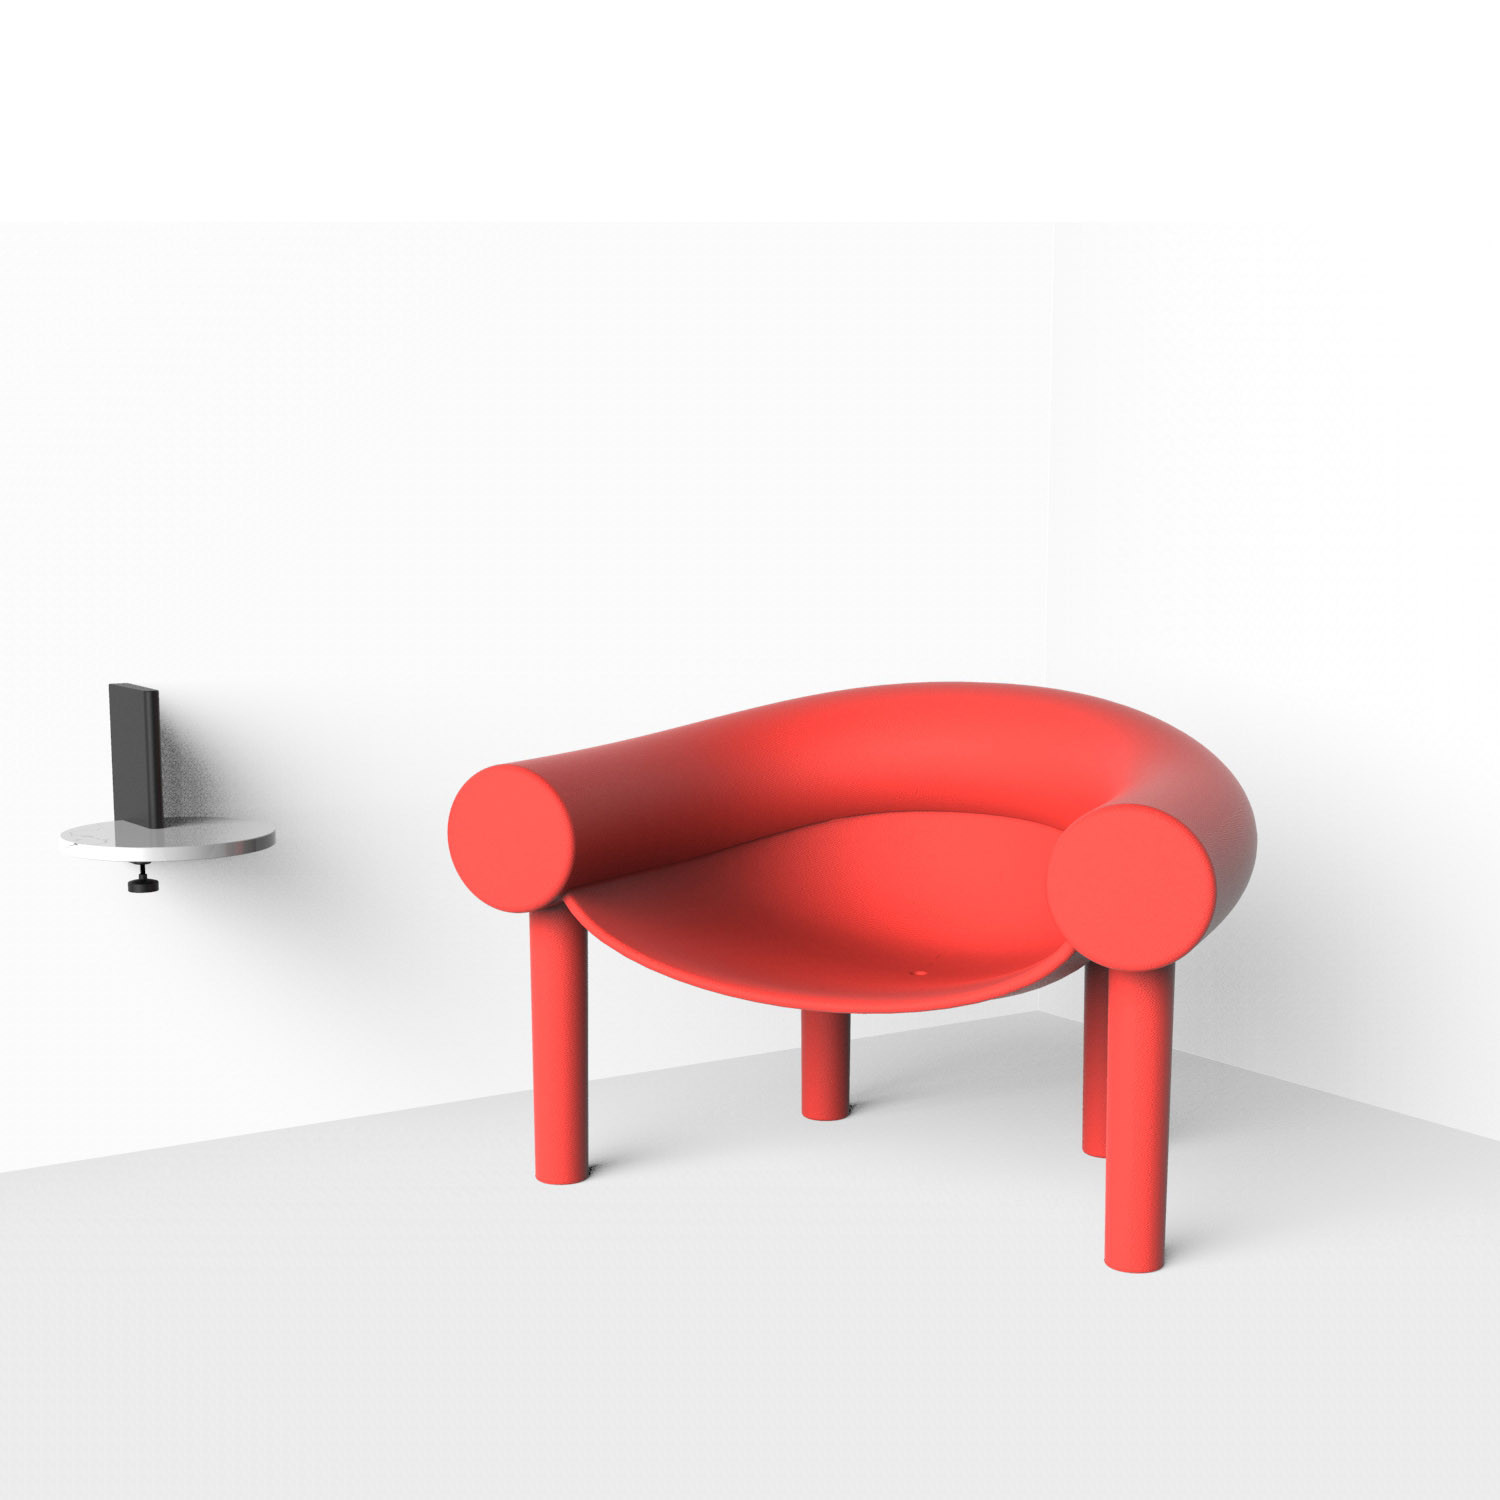 Sam Son Chair from Magis Design